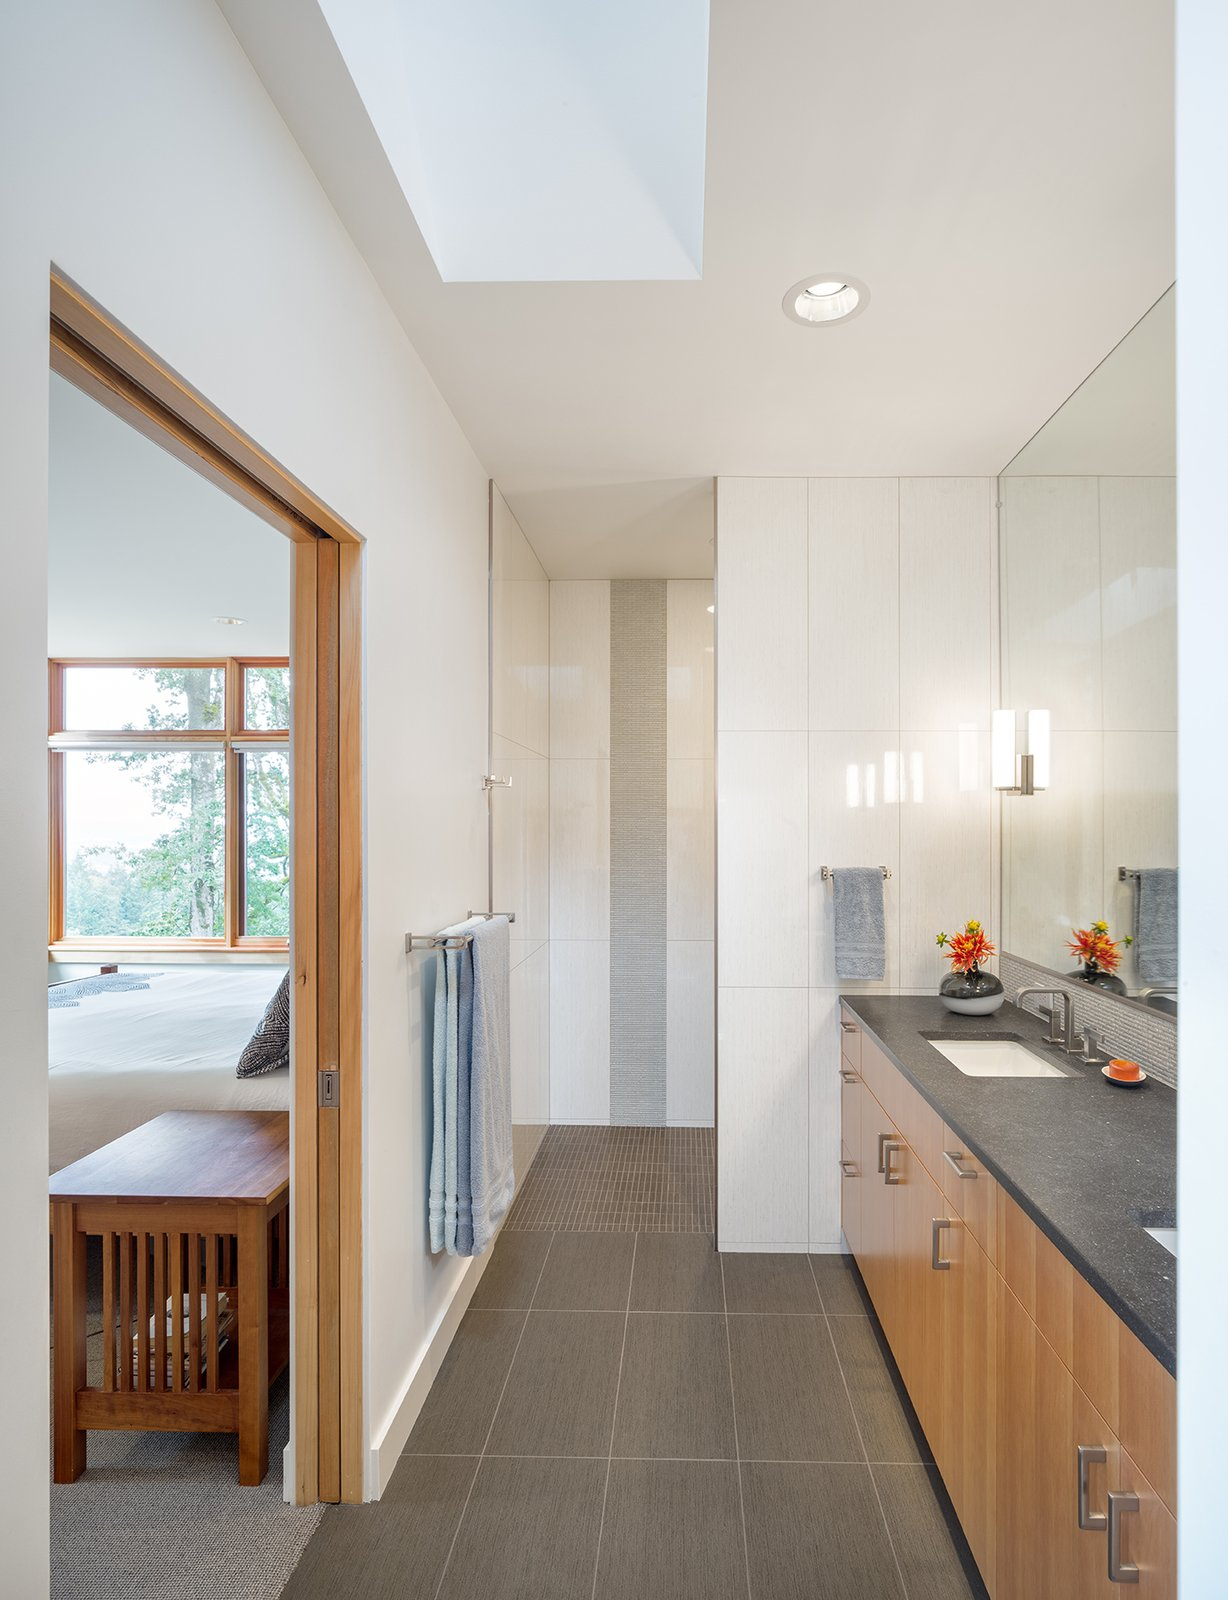 A sculptural skylight bathes the master bathroom in natural light.  A single level of tile floor allows easy access to the full height glass shower at the room's end.  Sunset Knoll House by Richard Brown Architect